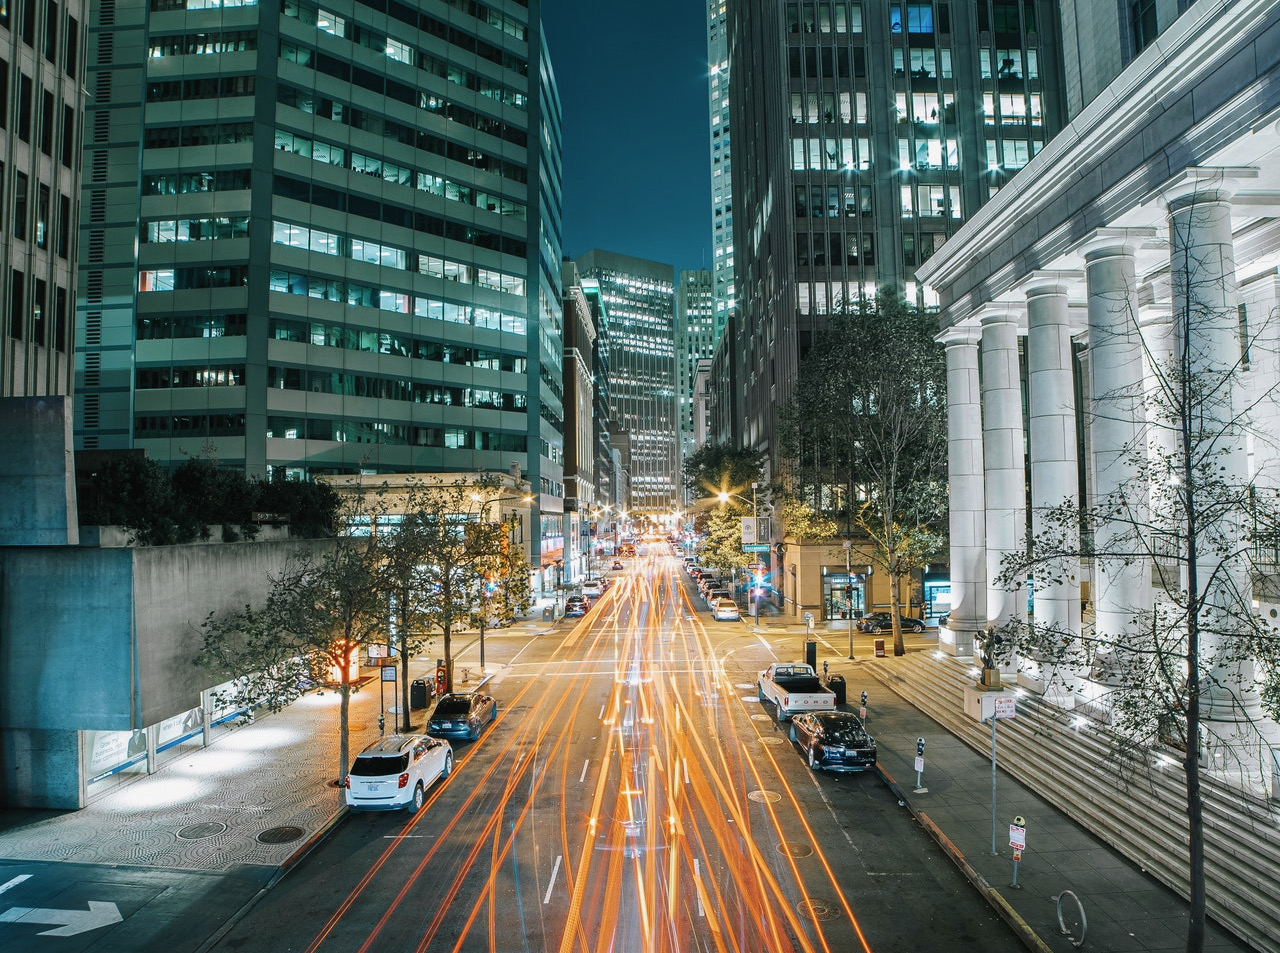 photo of city street and buildings using vertical leading lines to improve composition